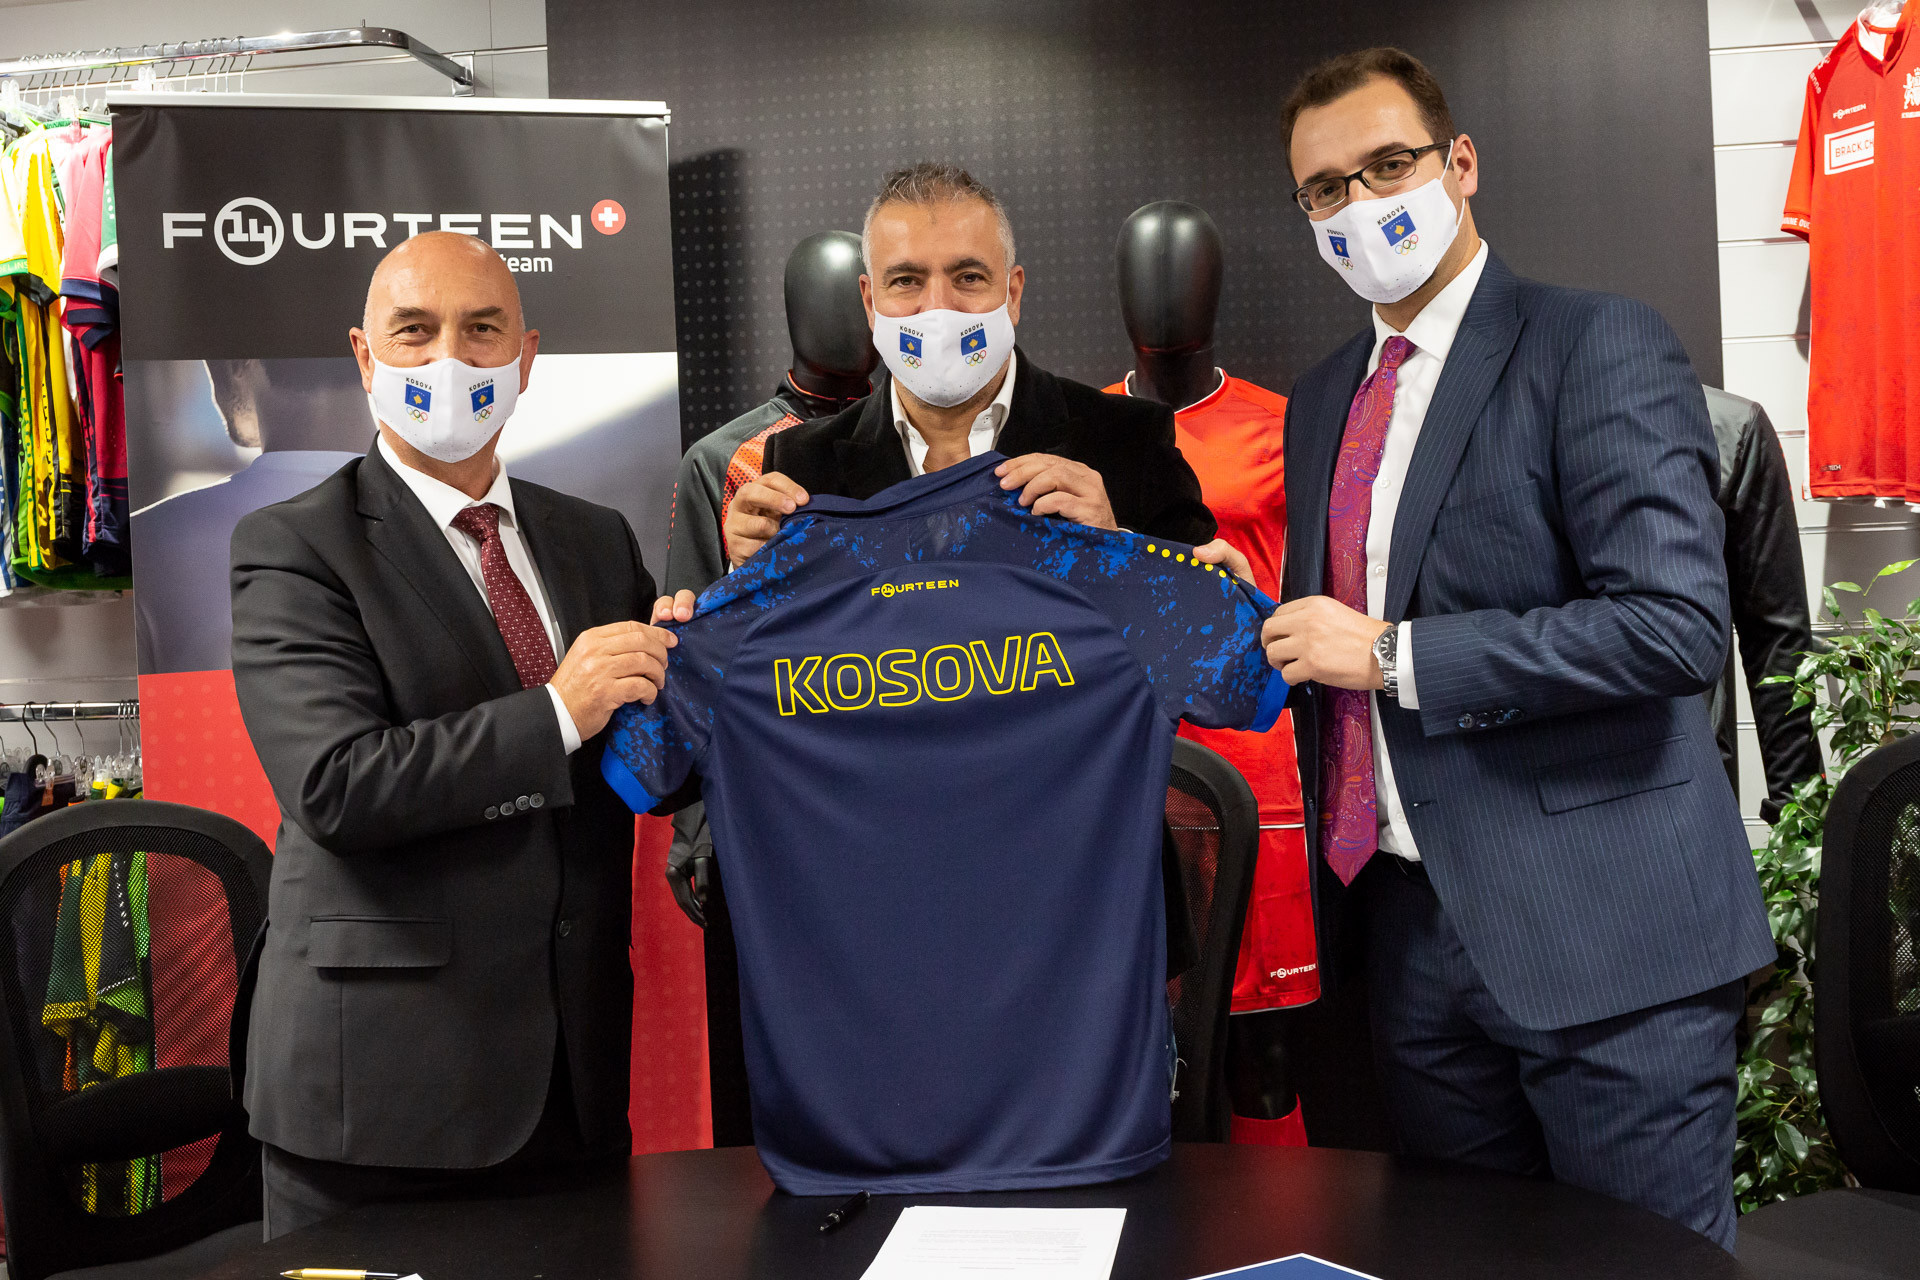 Olympic Committee of Kosovo signs four-year apparel deal with Fourteen